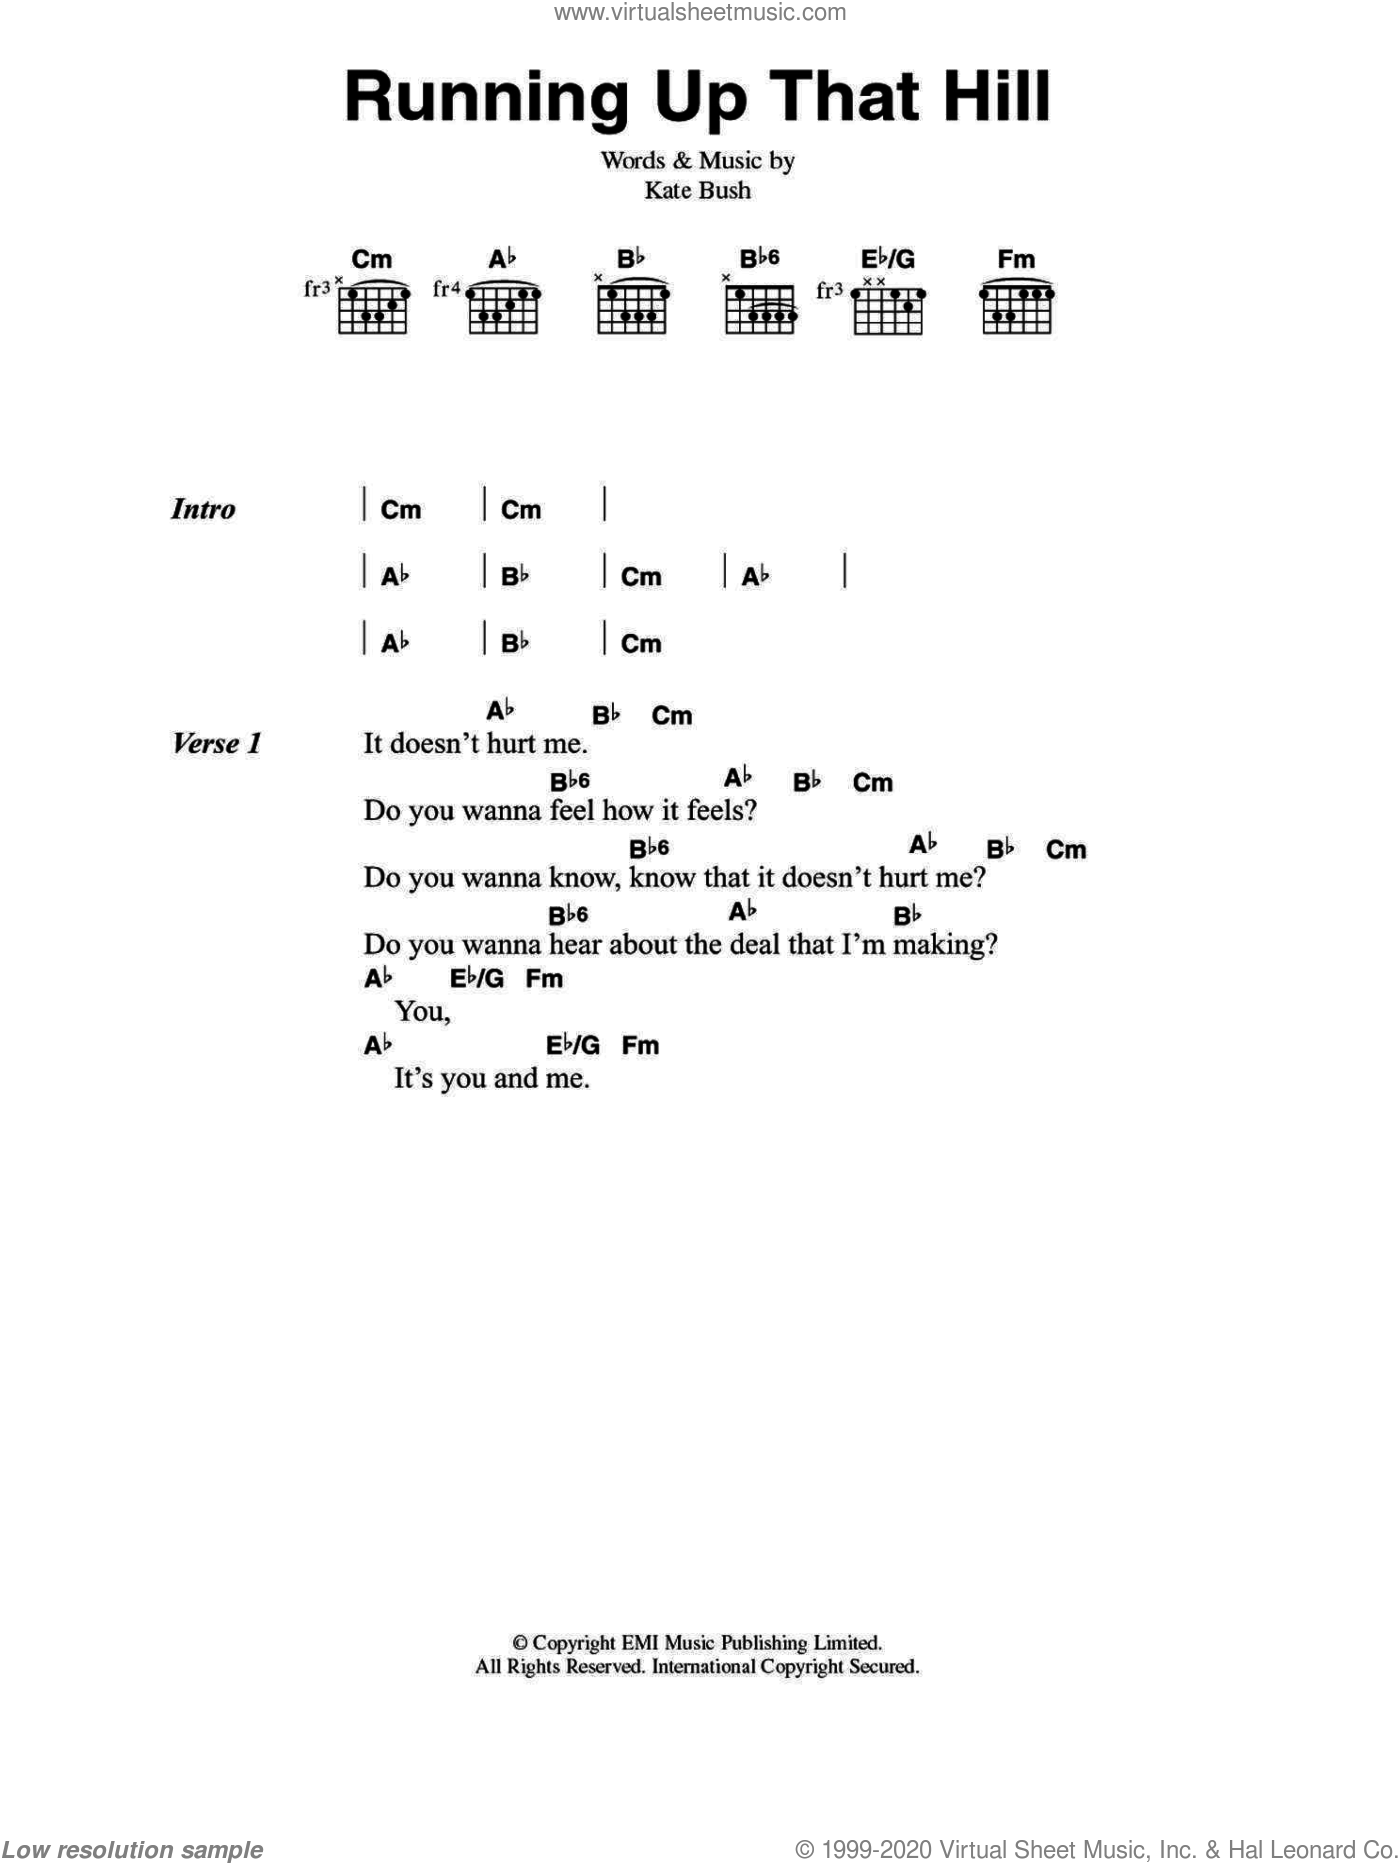 Bush - Running Up That Hill sheet music for guitar (chords) [PDF]